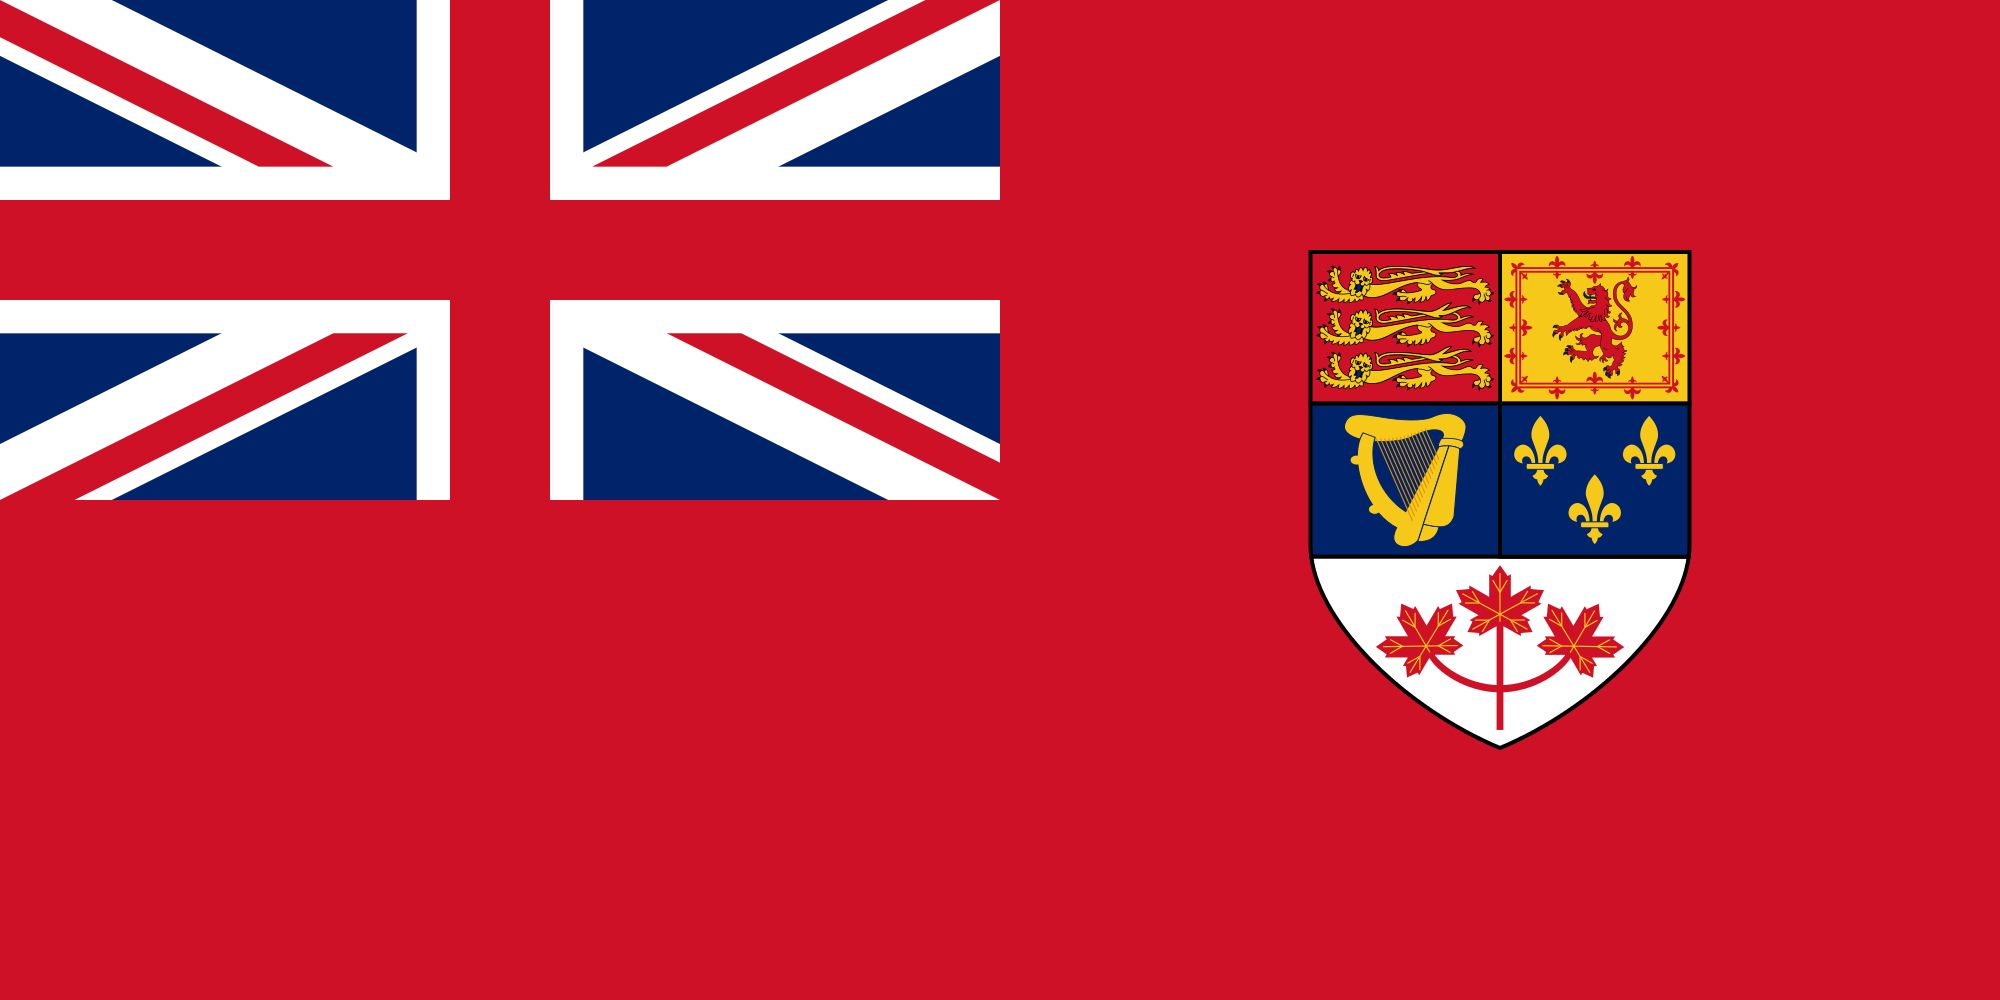 the old canadian flag before prime minister lester pearson decided